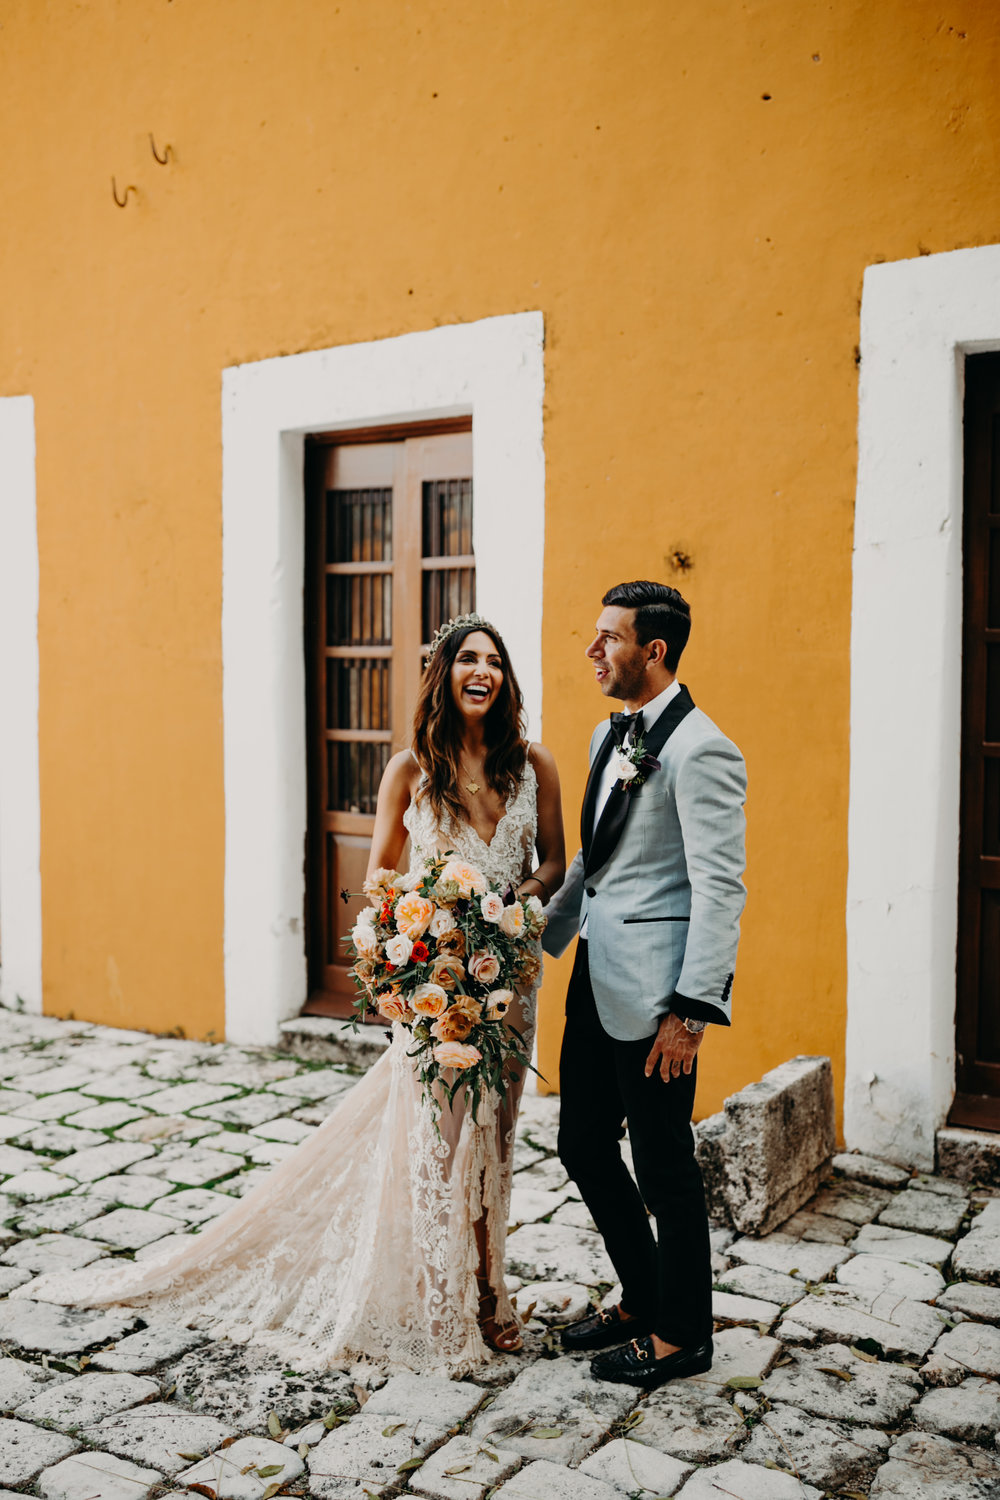 Hacienda Temozon Yucatan Mexico Wedding | Ida & Peter Emily Magers Photography-562.jpg